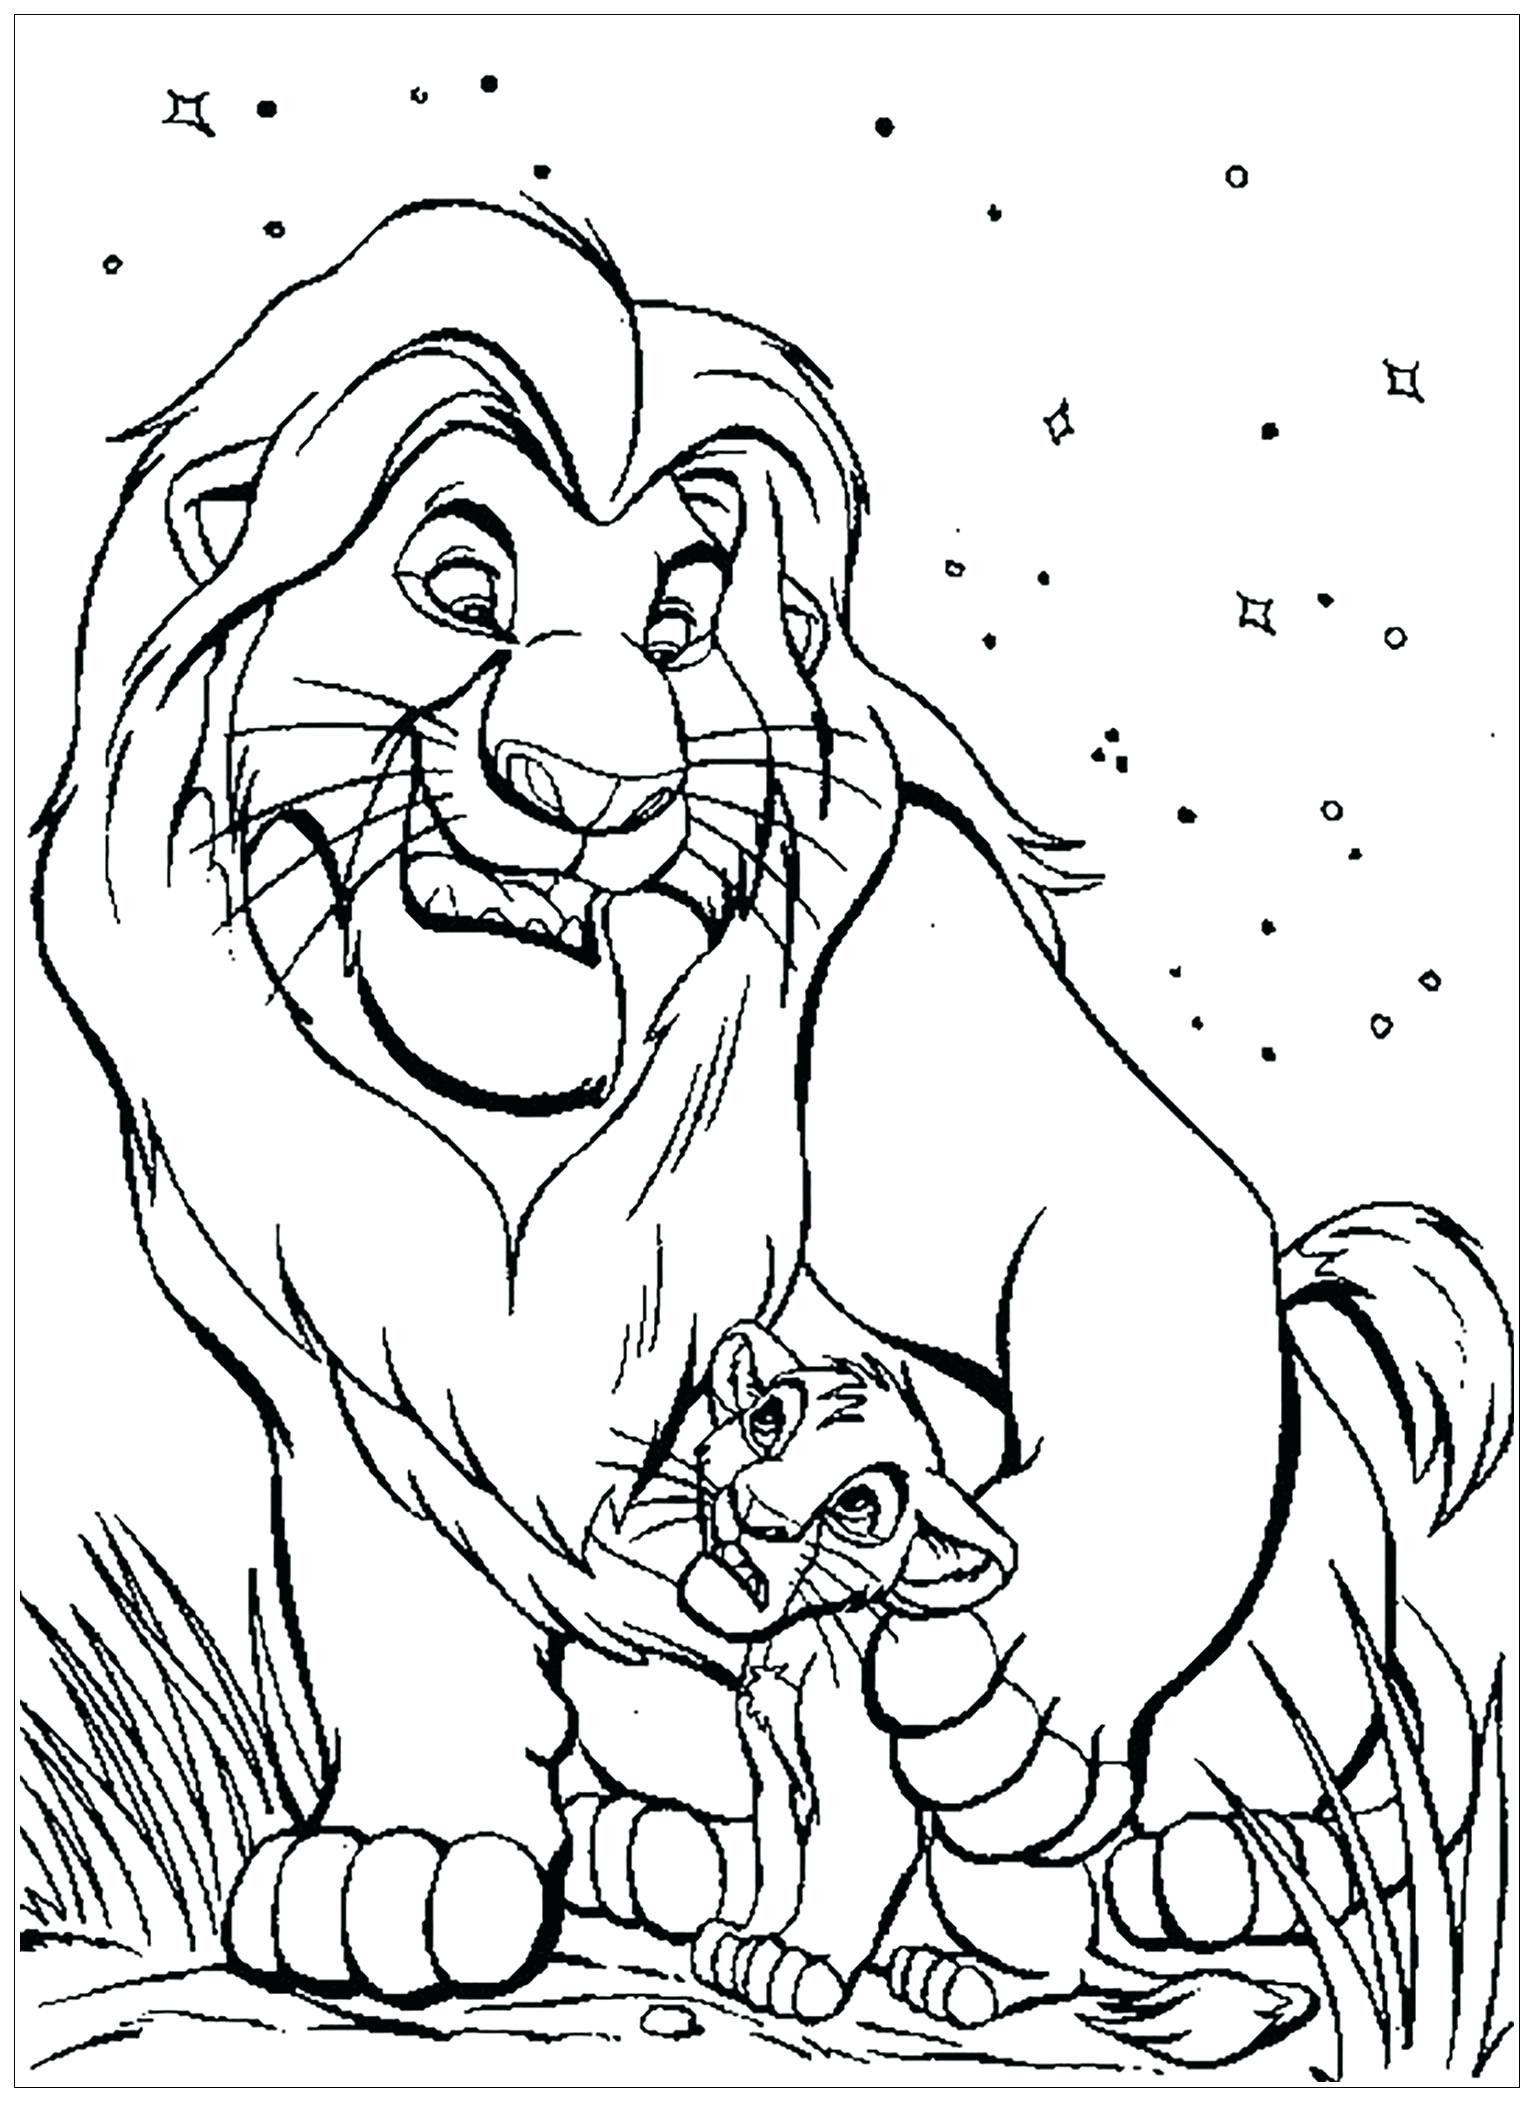 Lion Coloring Page Free Youngandtae Com Animal Coloring Pages King Coloring Book Lion Coloring Pages